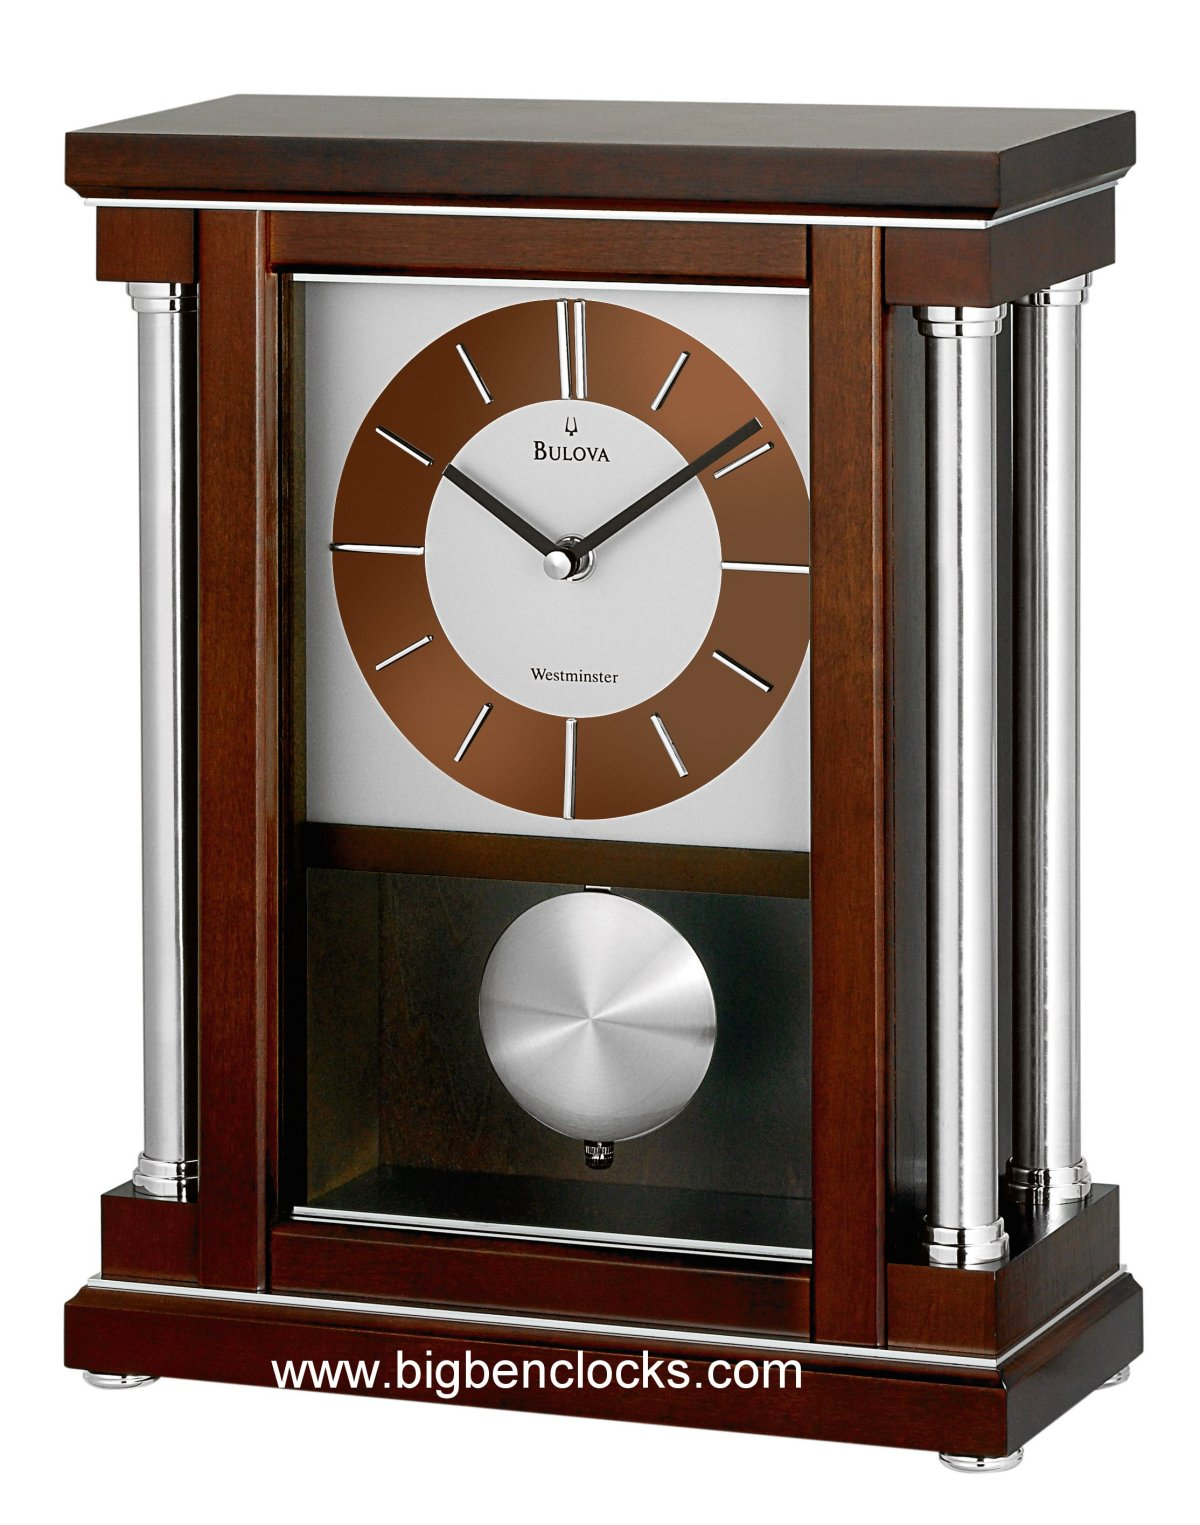 Bulova Mantel Clock | Silver Clocks Mantel | Bulova Wall Clocks Sale